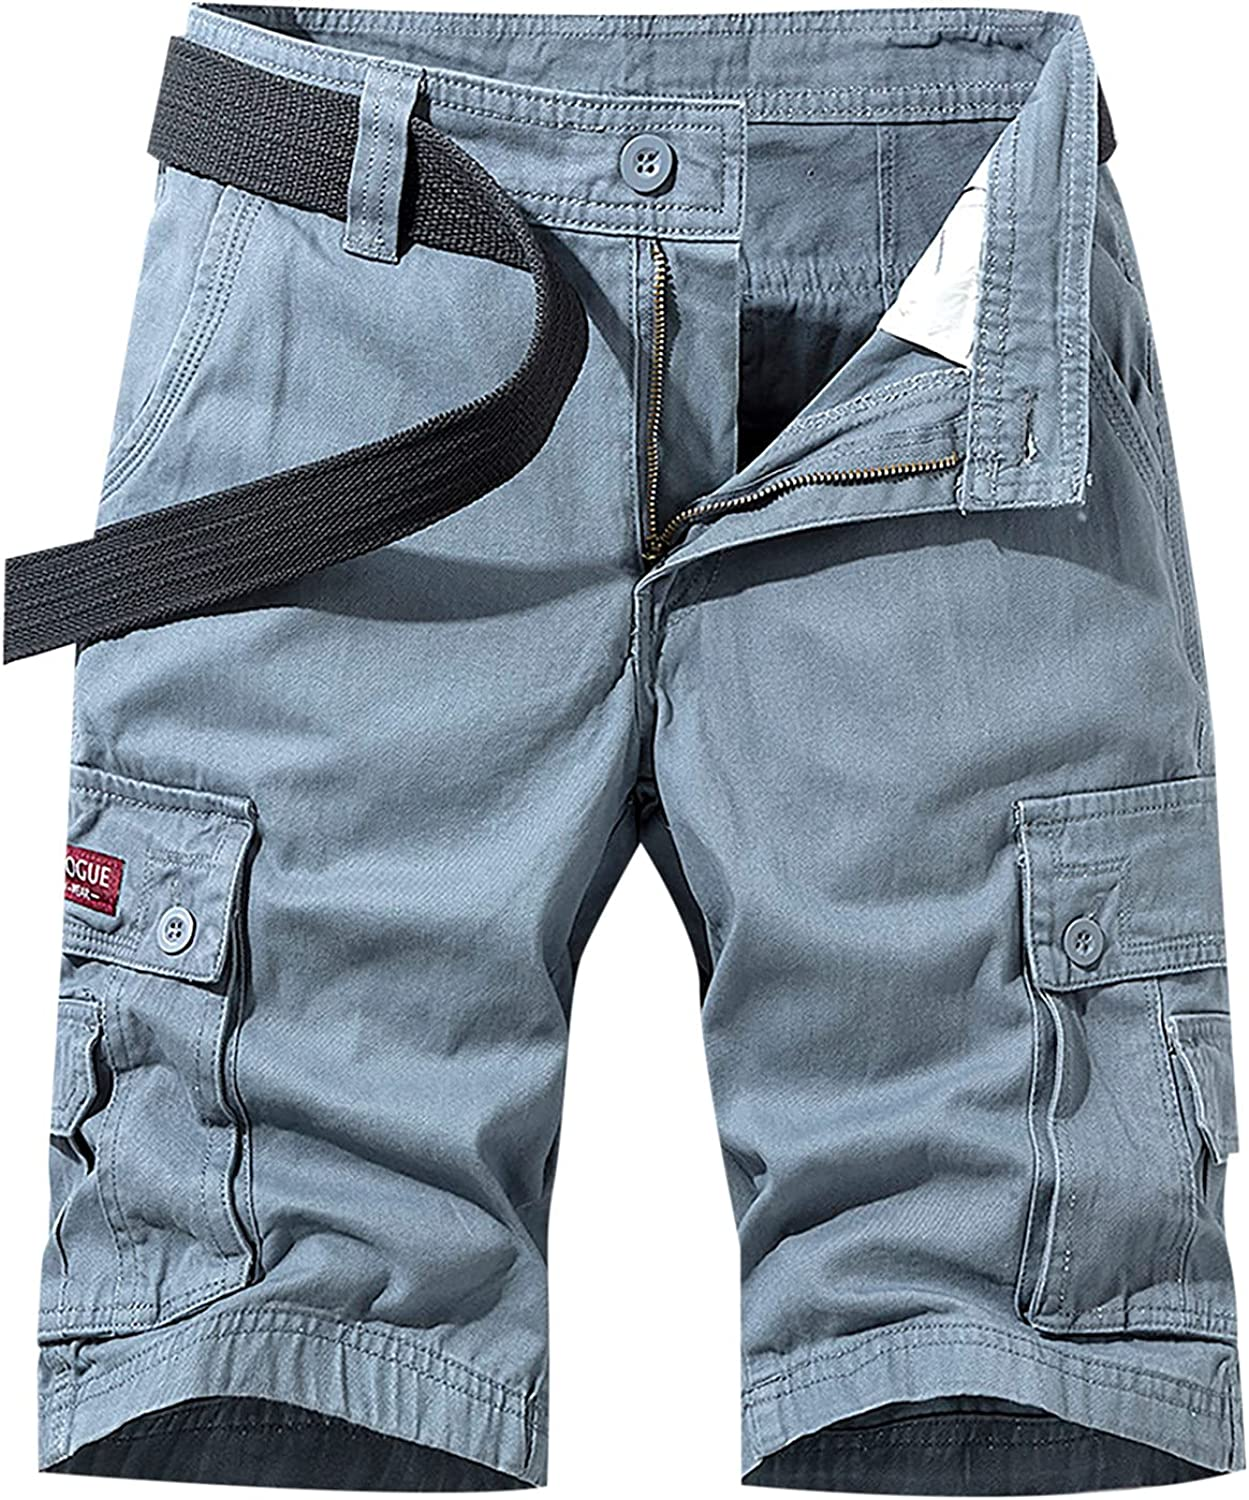 Men's Cotton Cargo Shorts with Multi Pockets,Plus Size Loose Fit Comfy Workout Summer Tooling Shorts with Side Slings